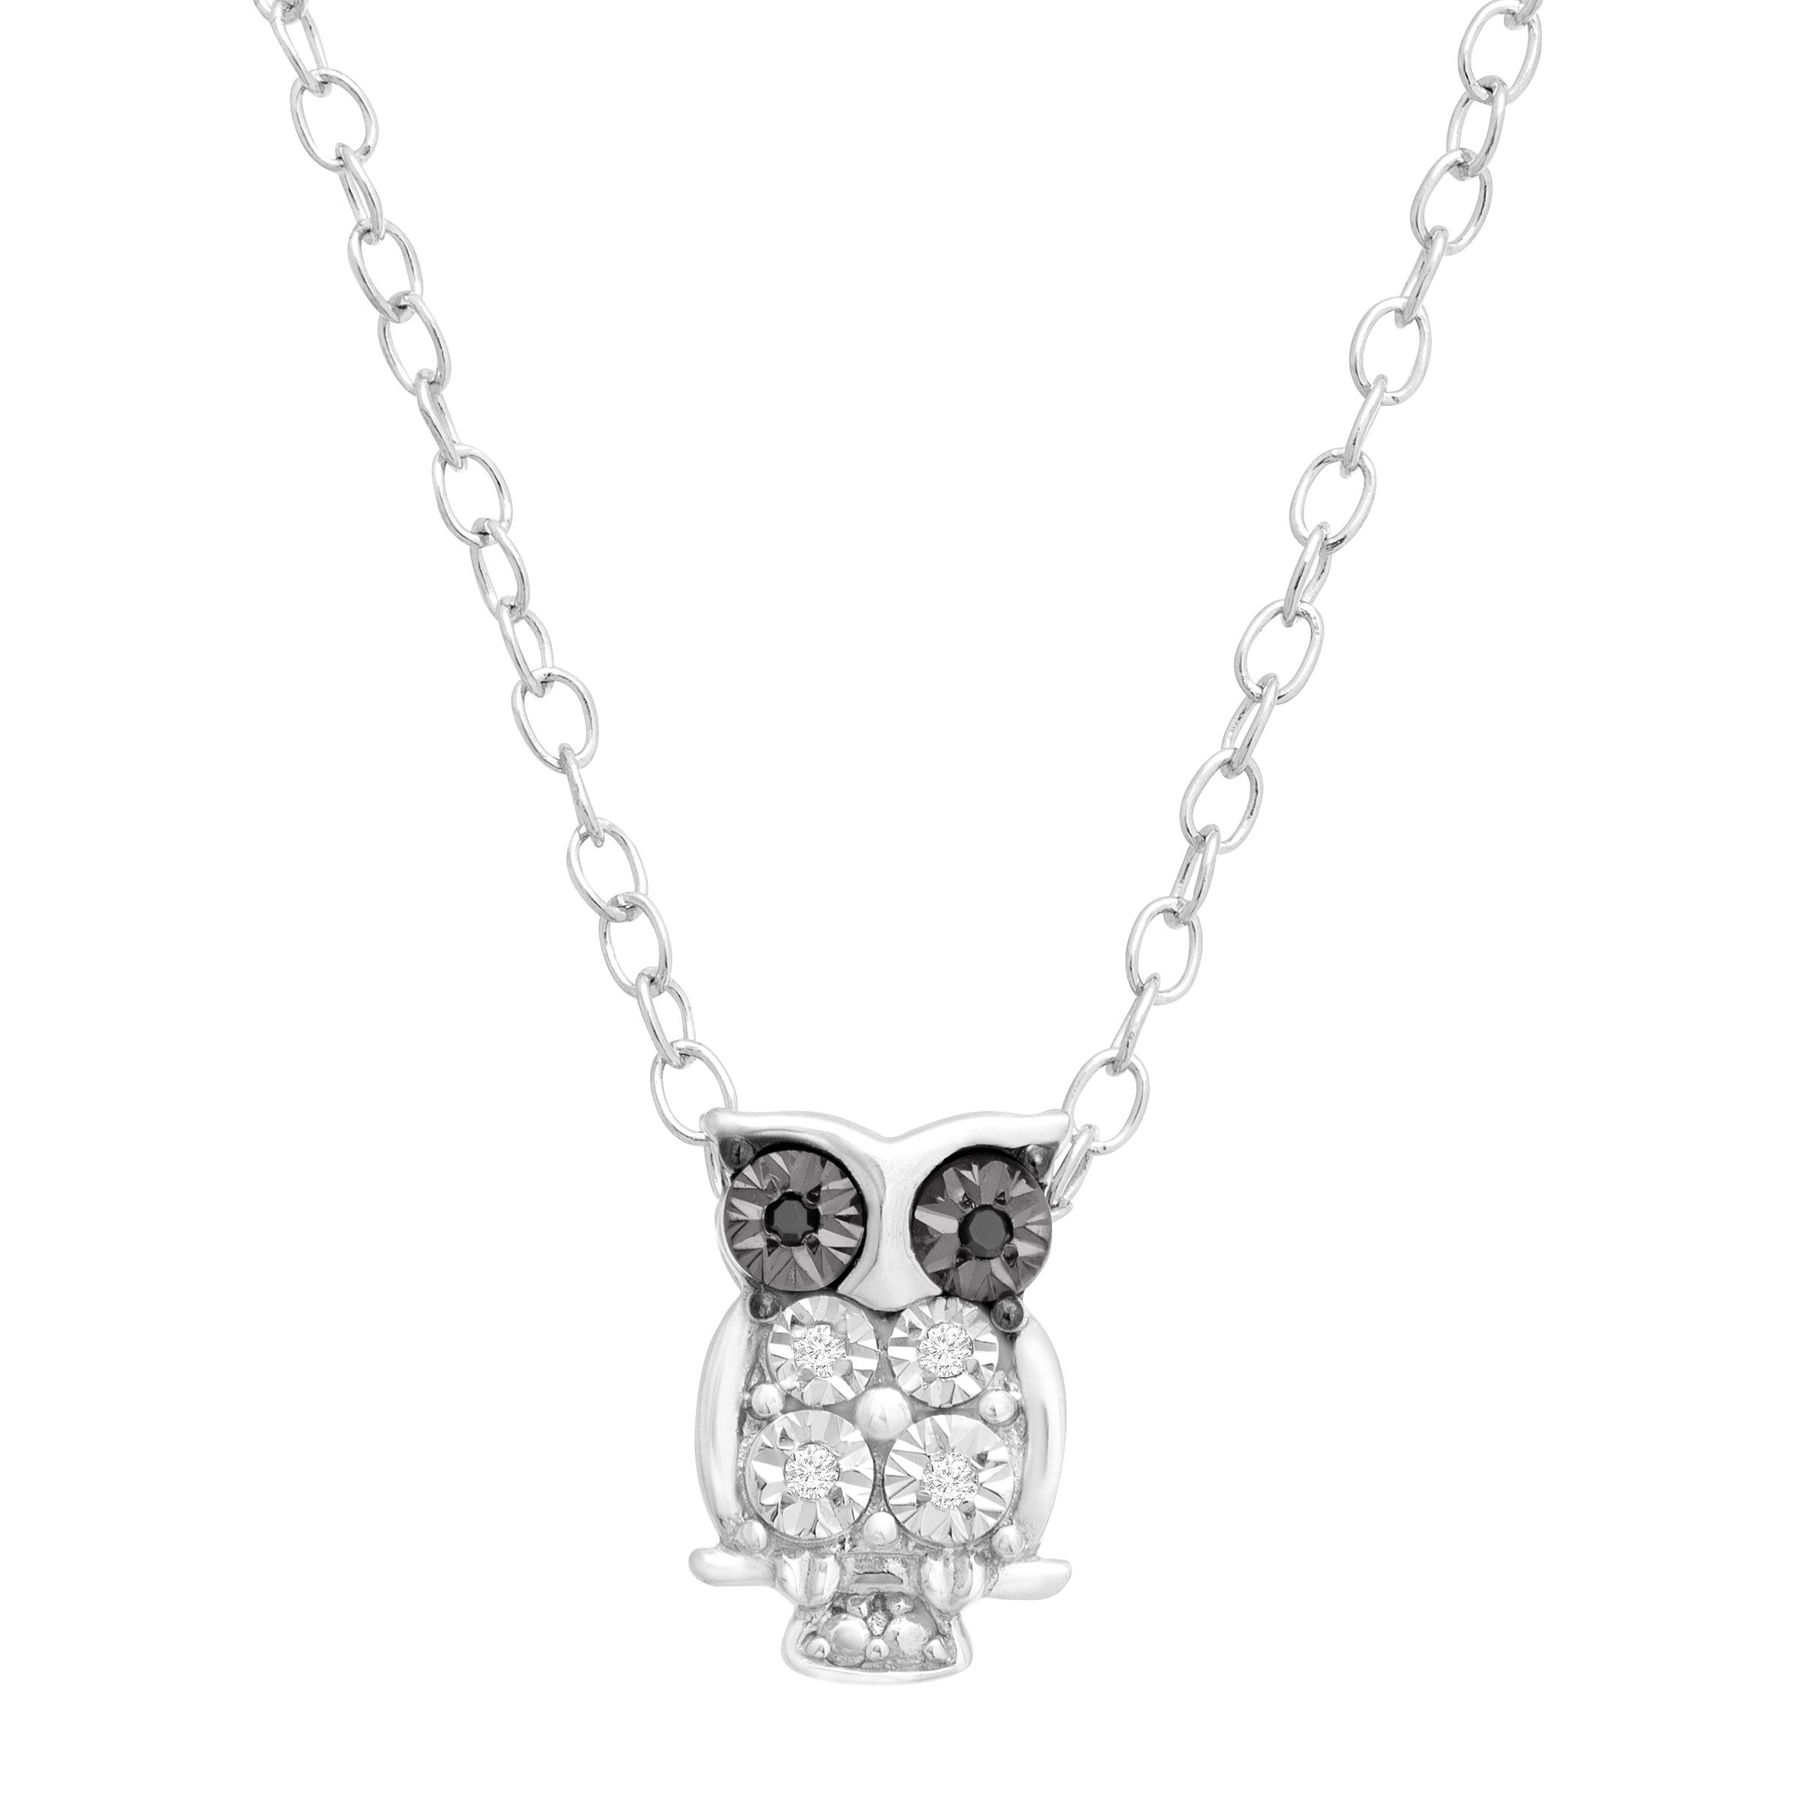 necklace gold products owl dainty tinksjewelry night animal pendant